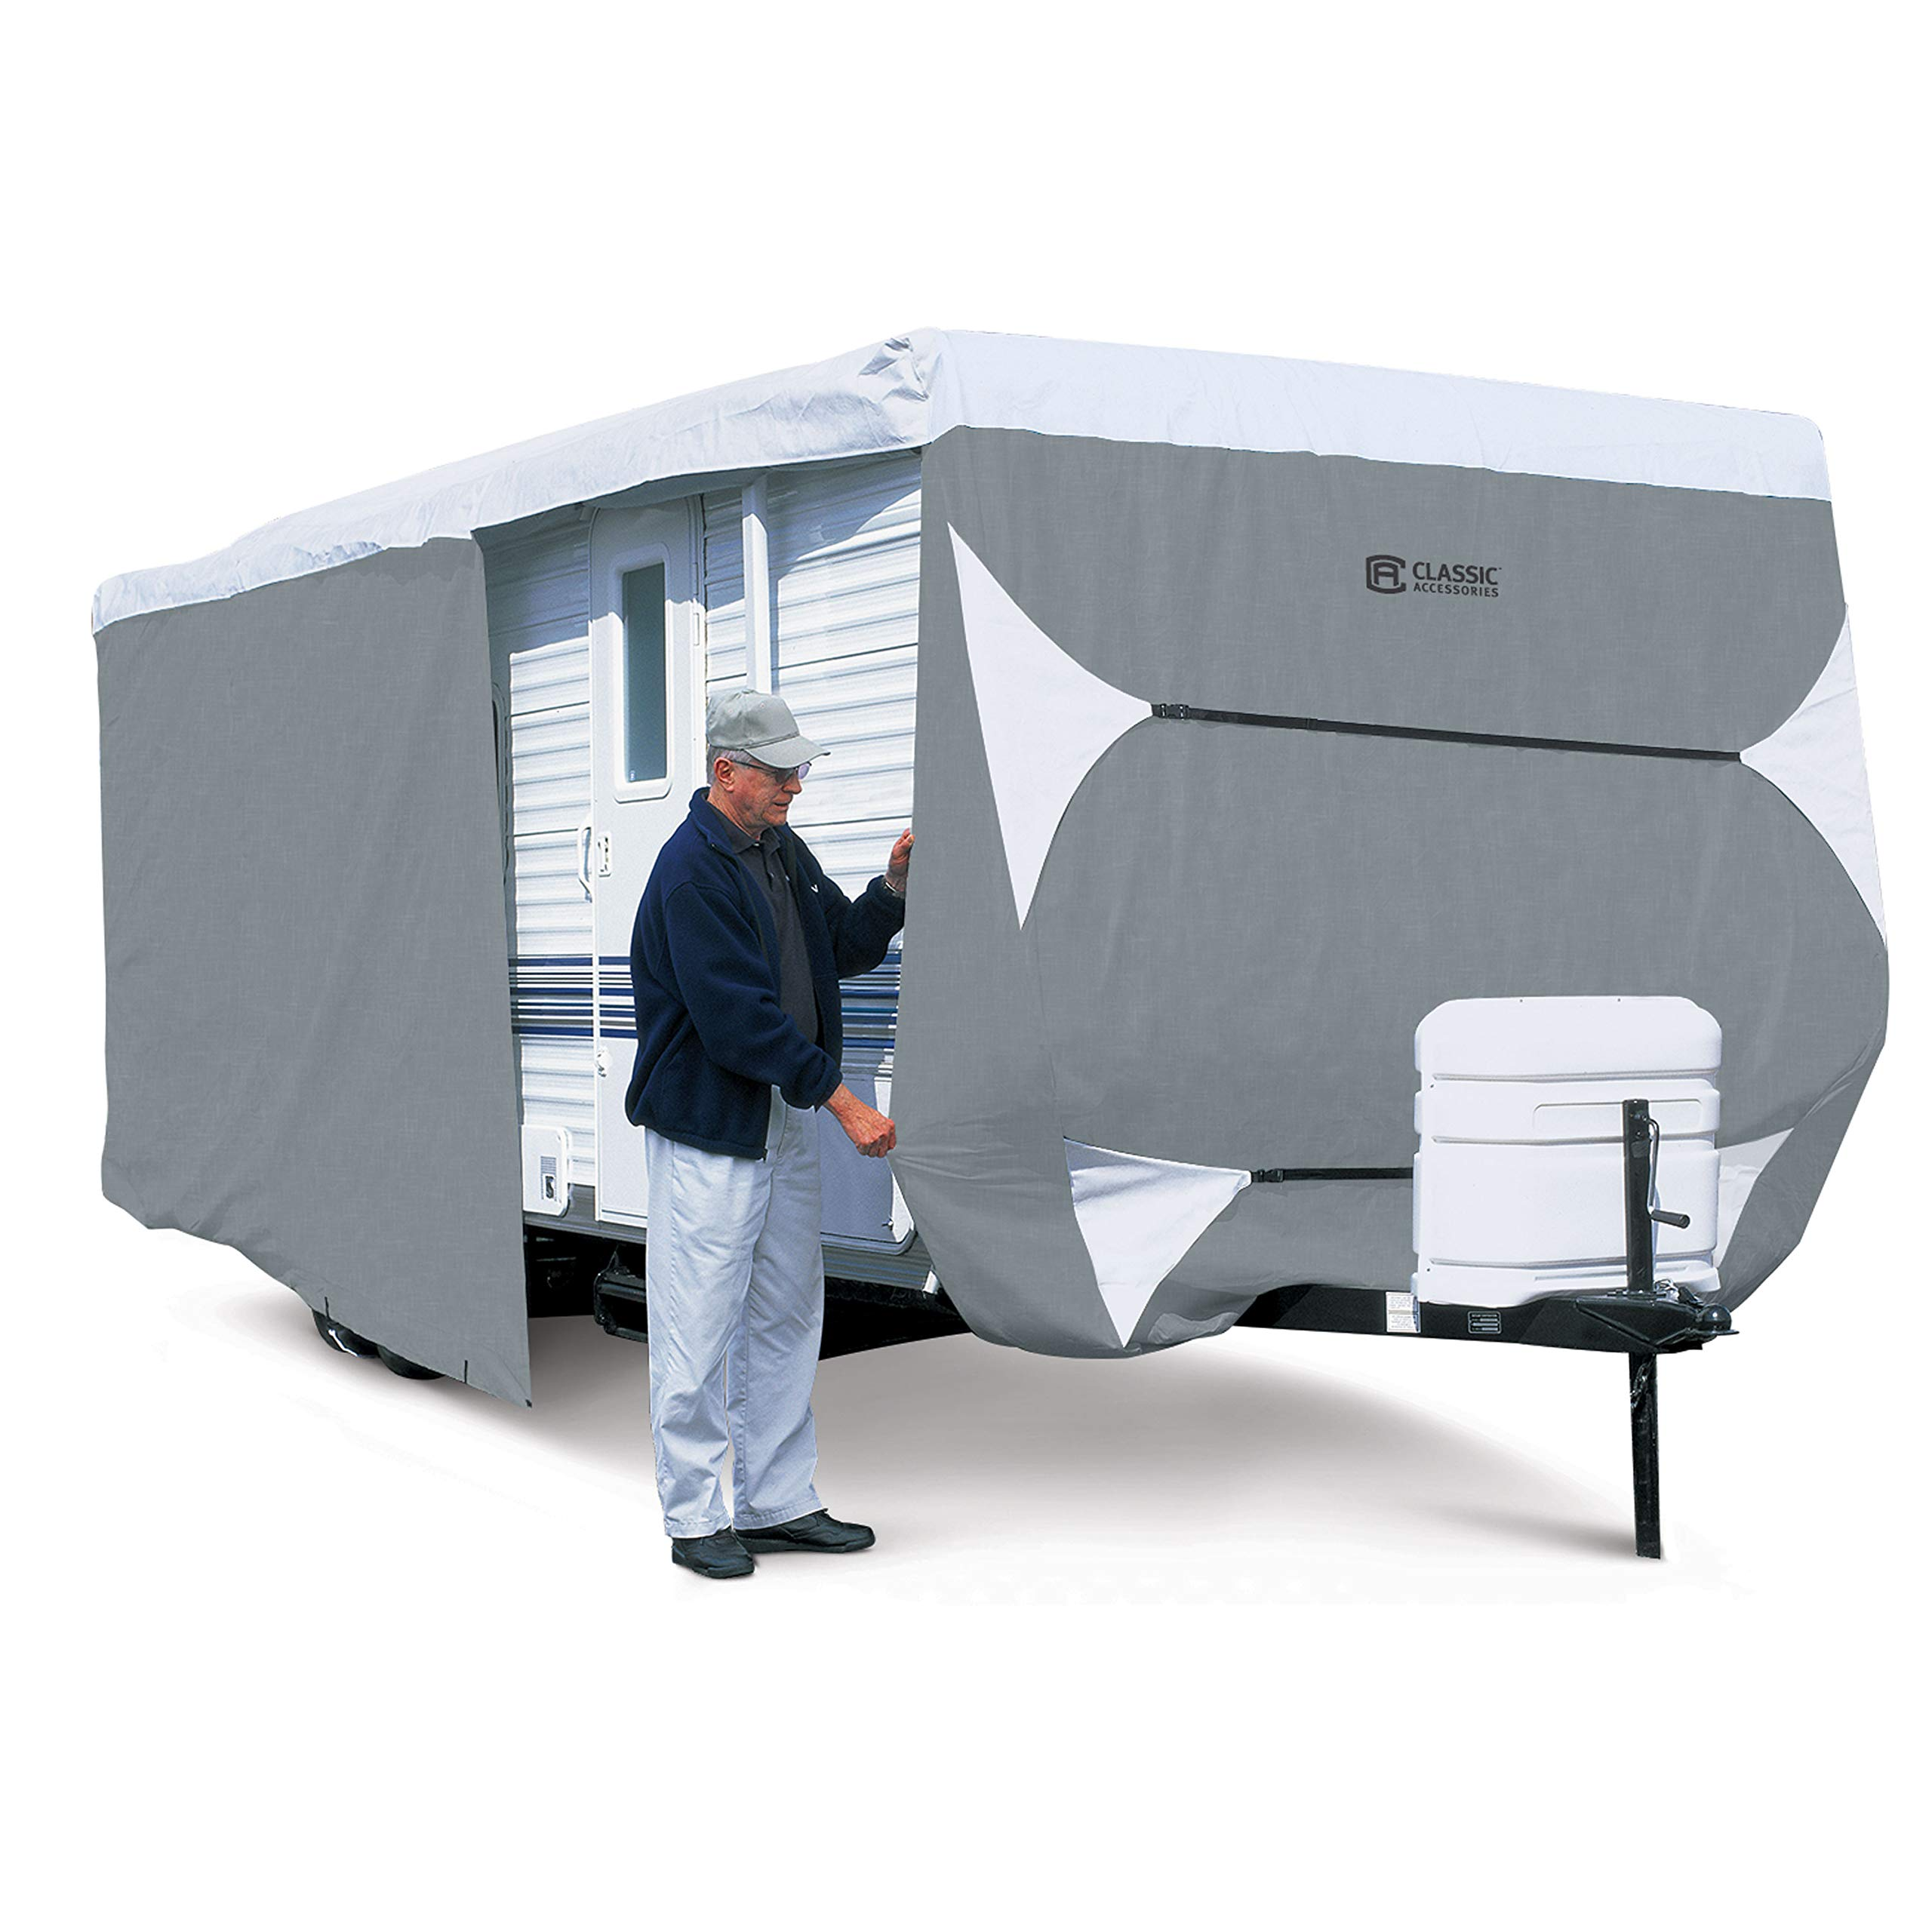 Classic Accessories OverDrive PolyPro 3 Deluxe Travel Trailer Cover, Fits 38' - 40' by Classic Accessories